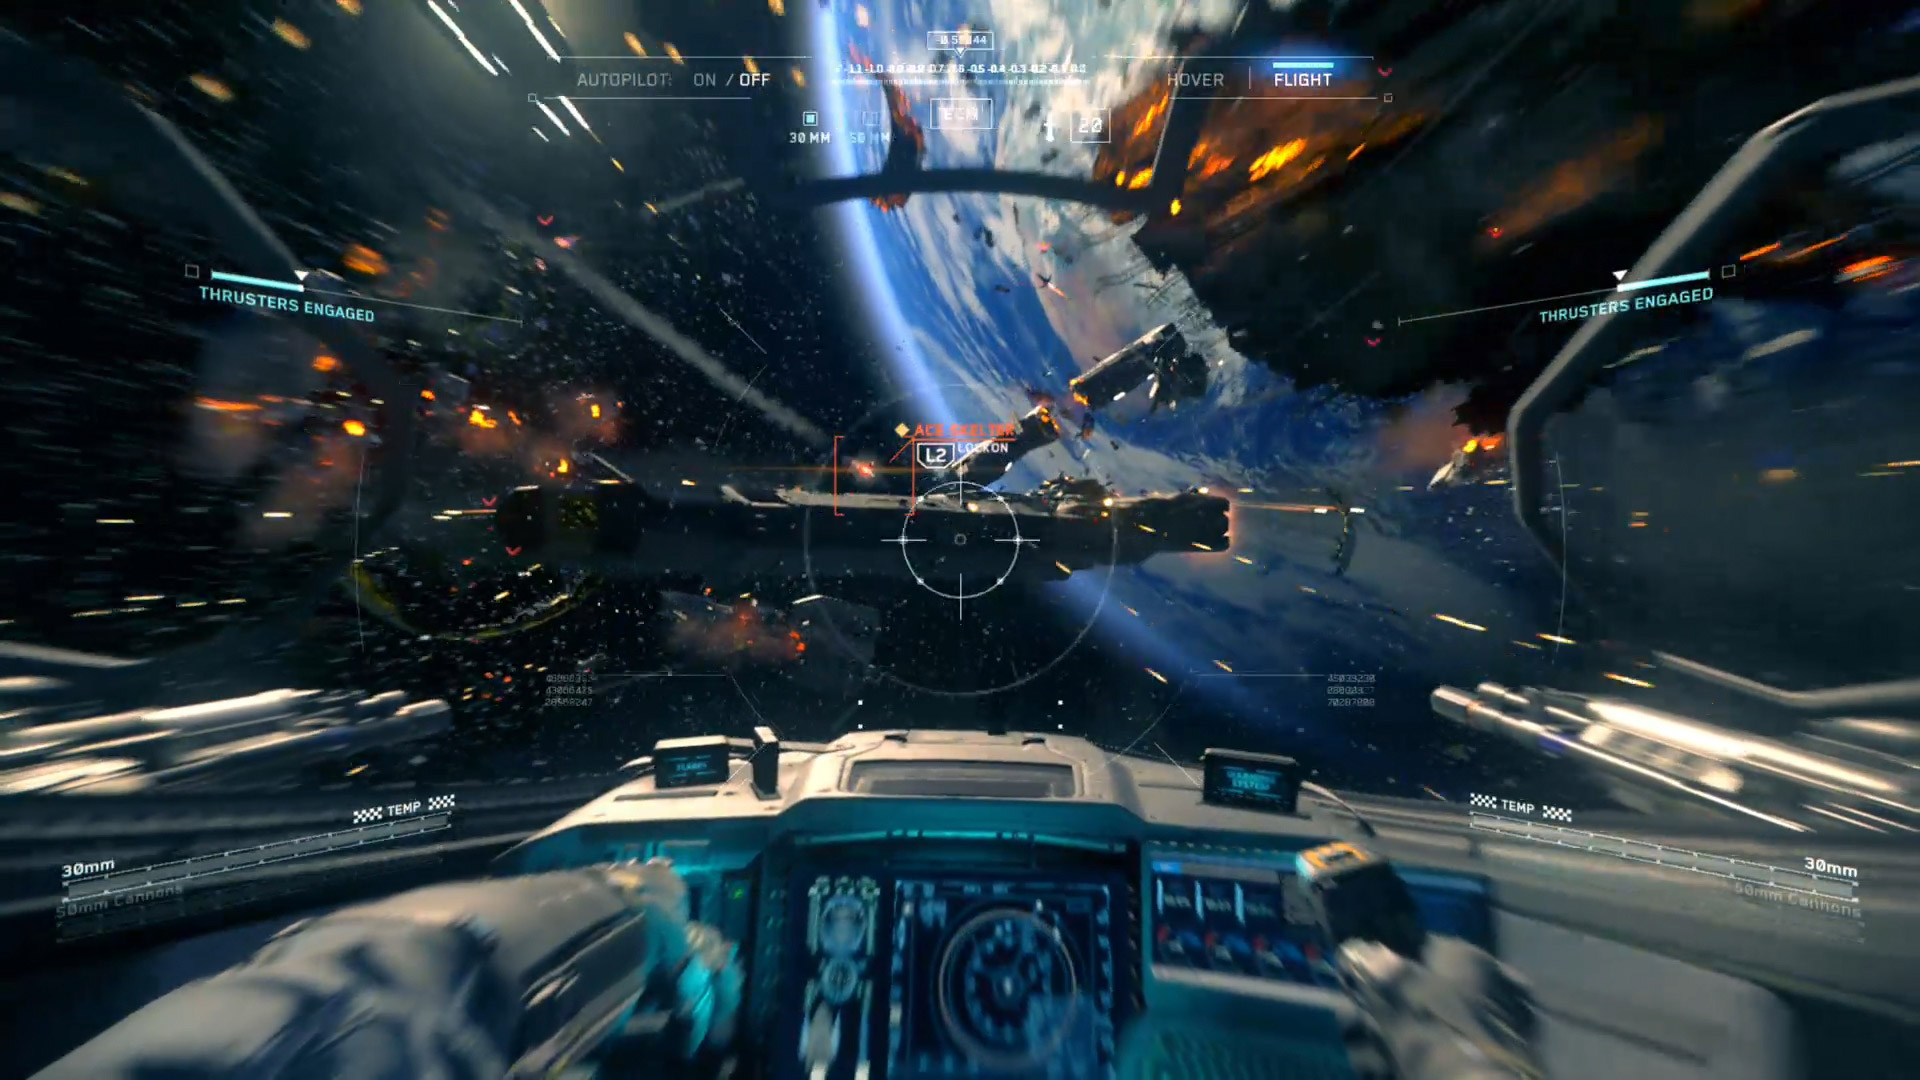 Call Of Duty Infinite Warfare Vr Experience To Be Shown On Psvr At Game Ps4 Piloting The Jackal In Photo Courtesy Activision